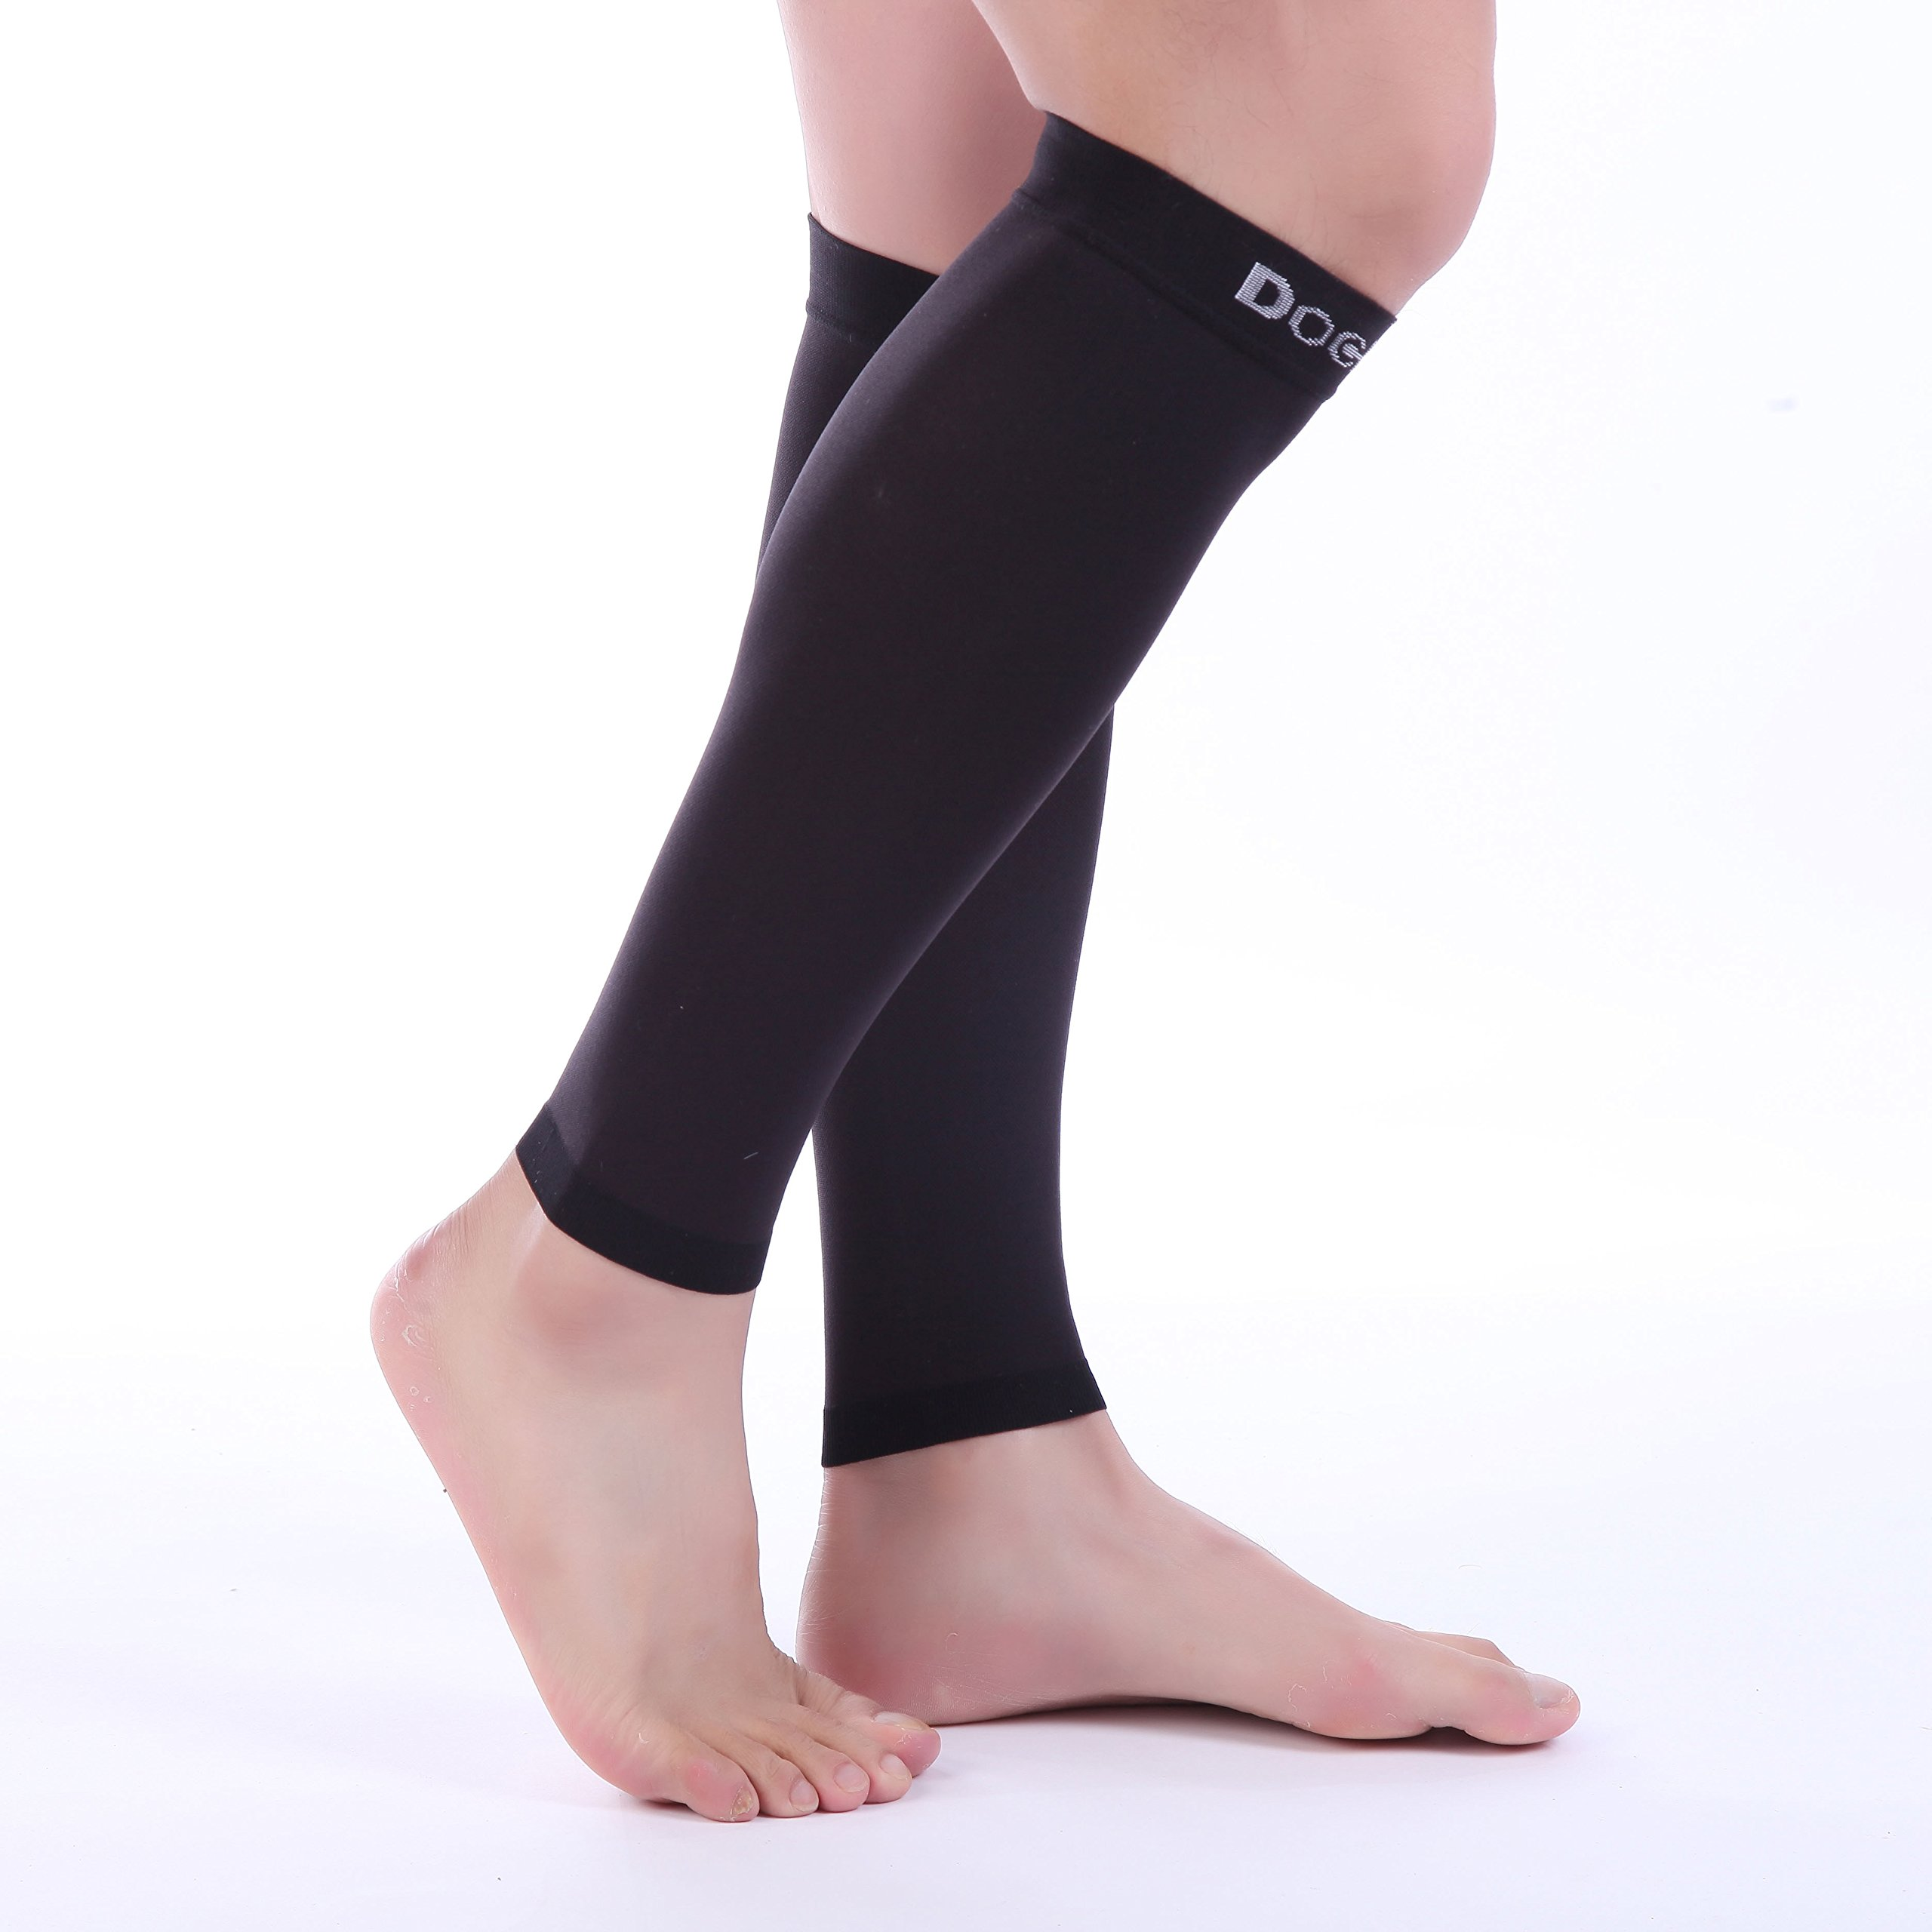 Doc Miller Premium Calf Compression Sleeve 1 Pair 20-30mmHg Strong Calf Support Graduated Pressure for Sports Running Muscle Recovery Shin Splints Varicose Veins (Black, 2-Pack, Large) by Doc Miller (Image #2)